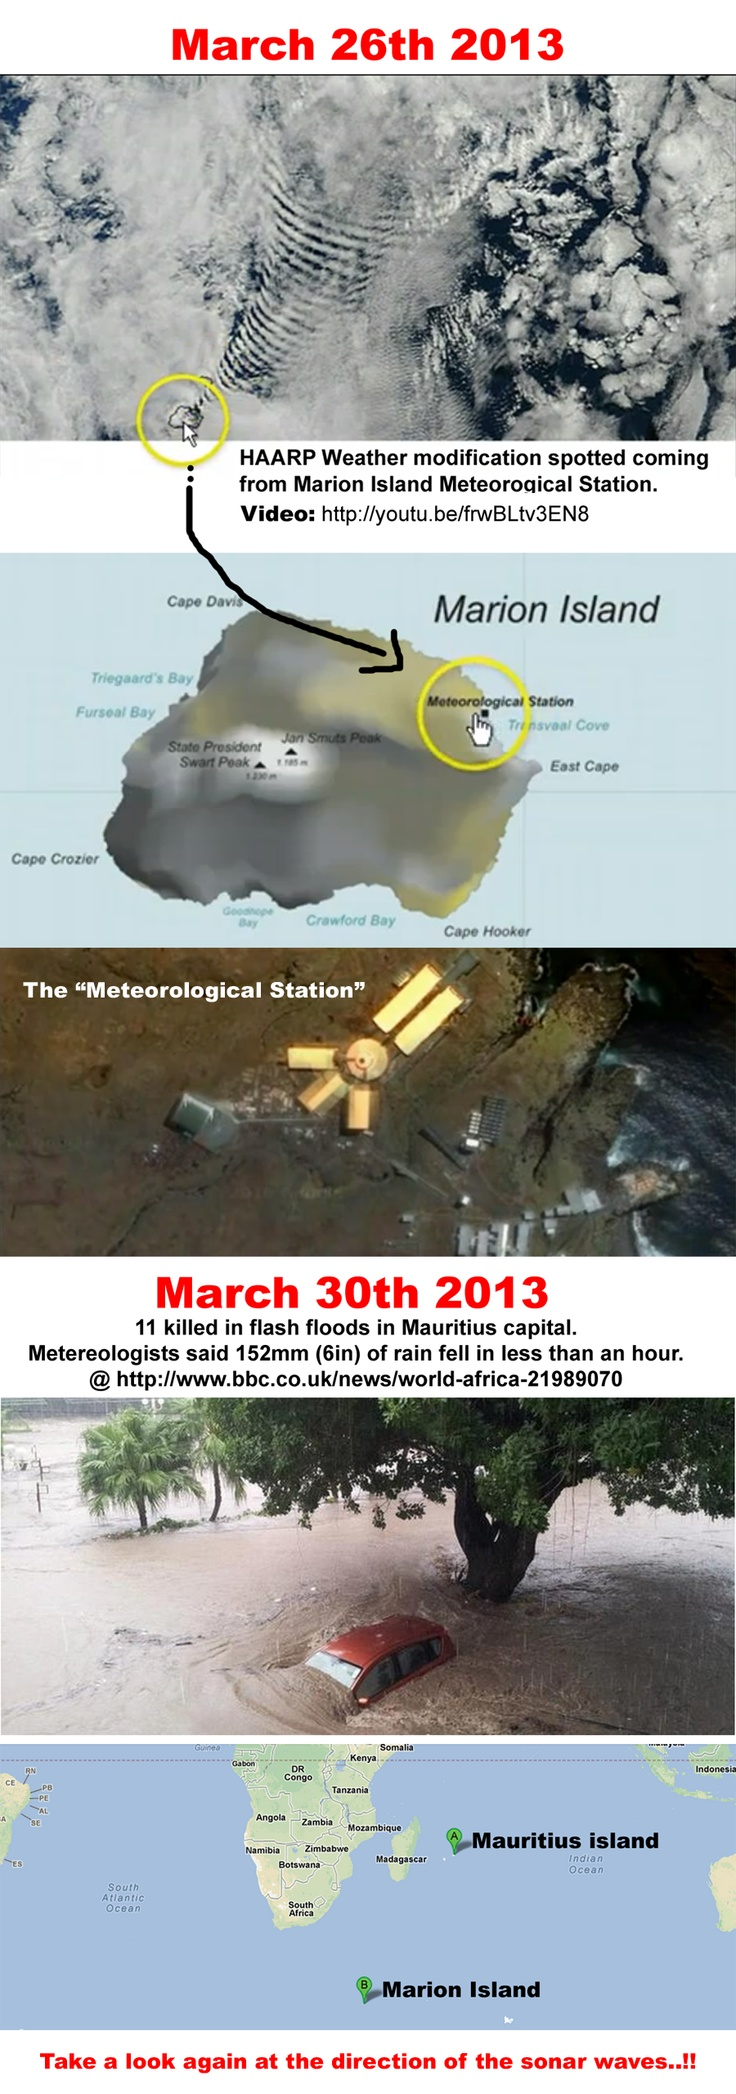 HAARP Weather Modification Spotted coming from Marion island and targeting Mauritius island – 11 dead from floods